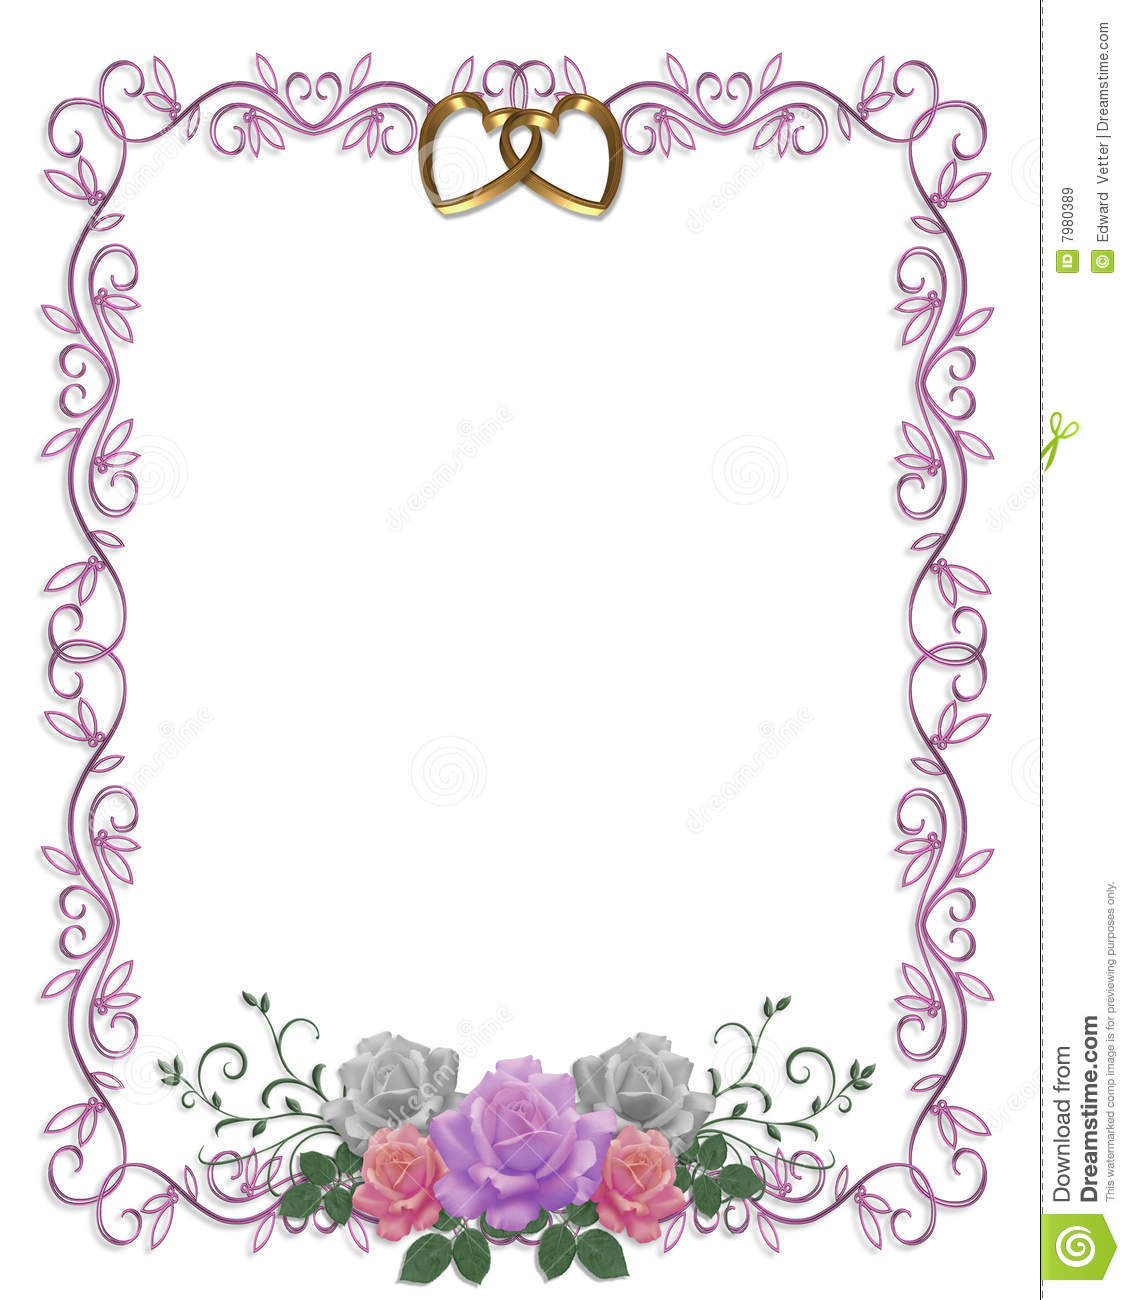 Transparent Wedding Frame with Rings and Pink Roses ... |Flower Border Designs For Wedding Cards